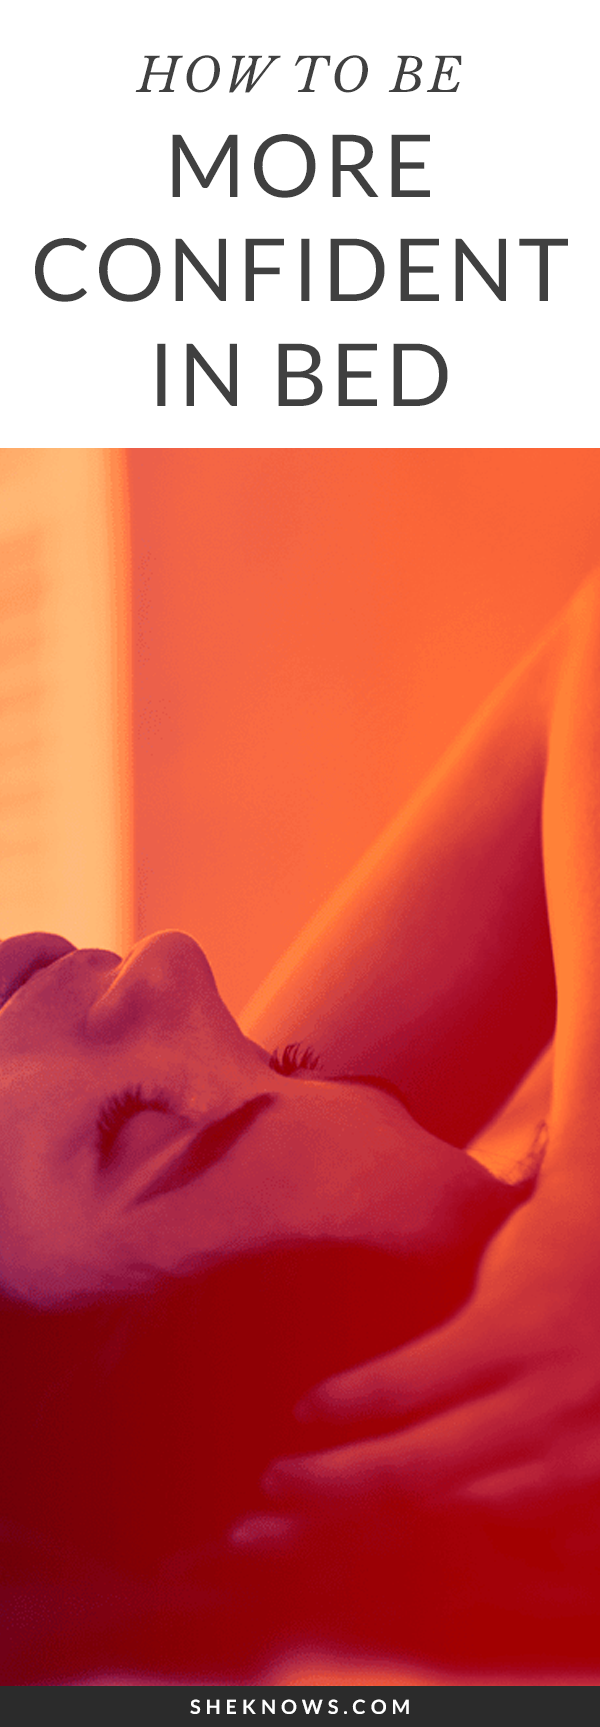 Pin it! 6 Unexpected Ways to Be More Confident in Bed